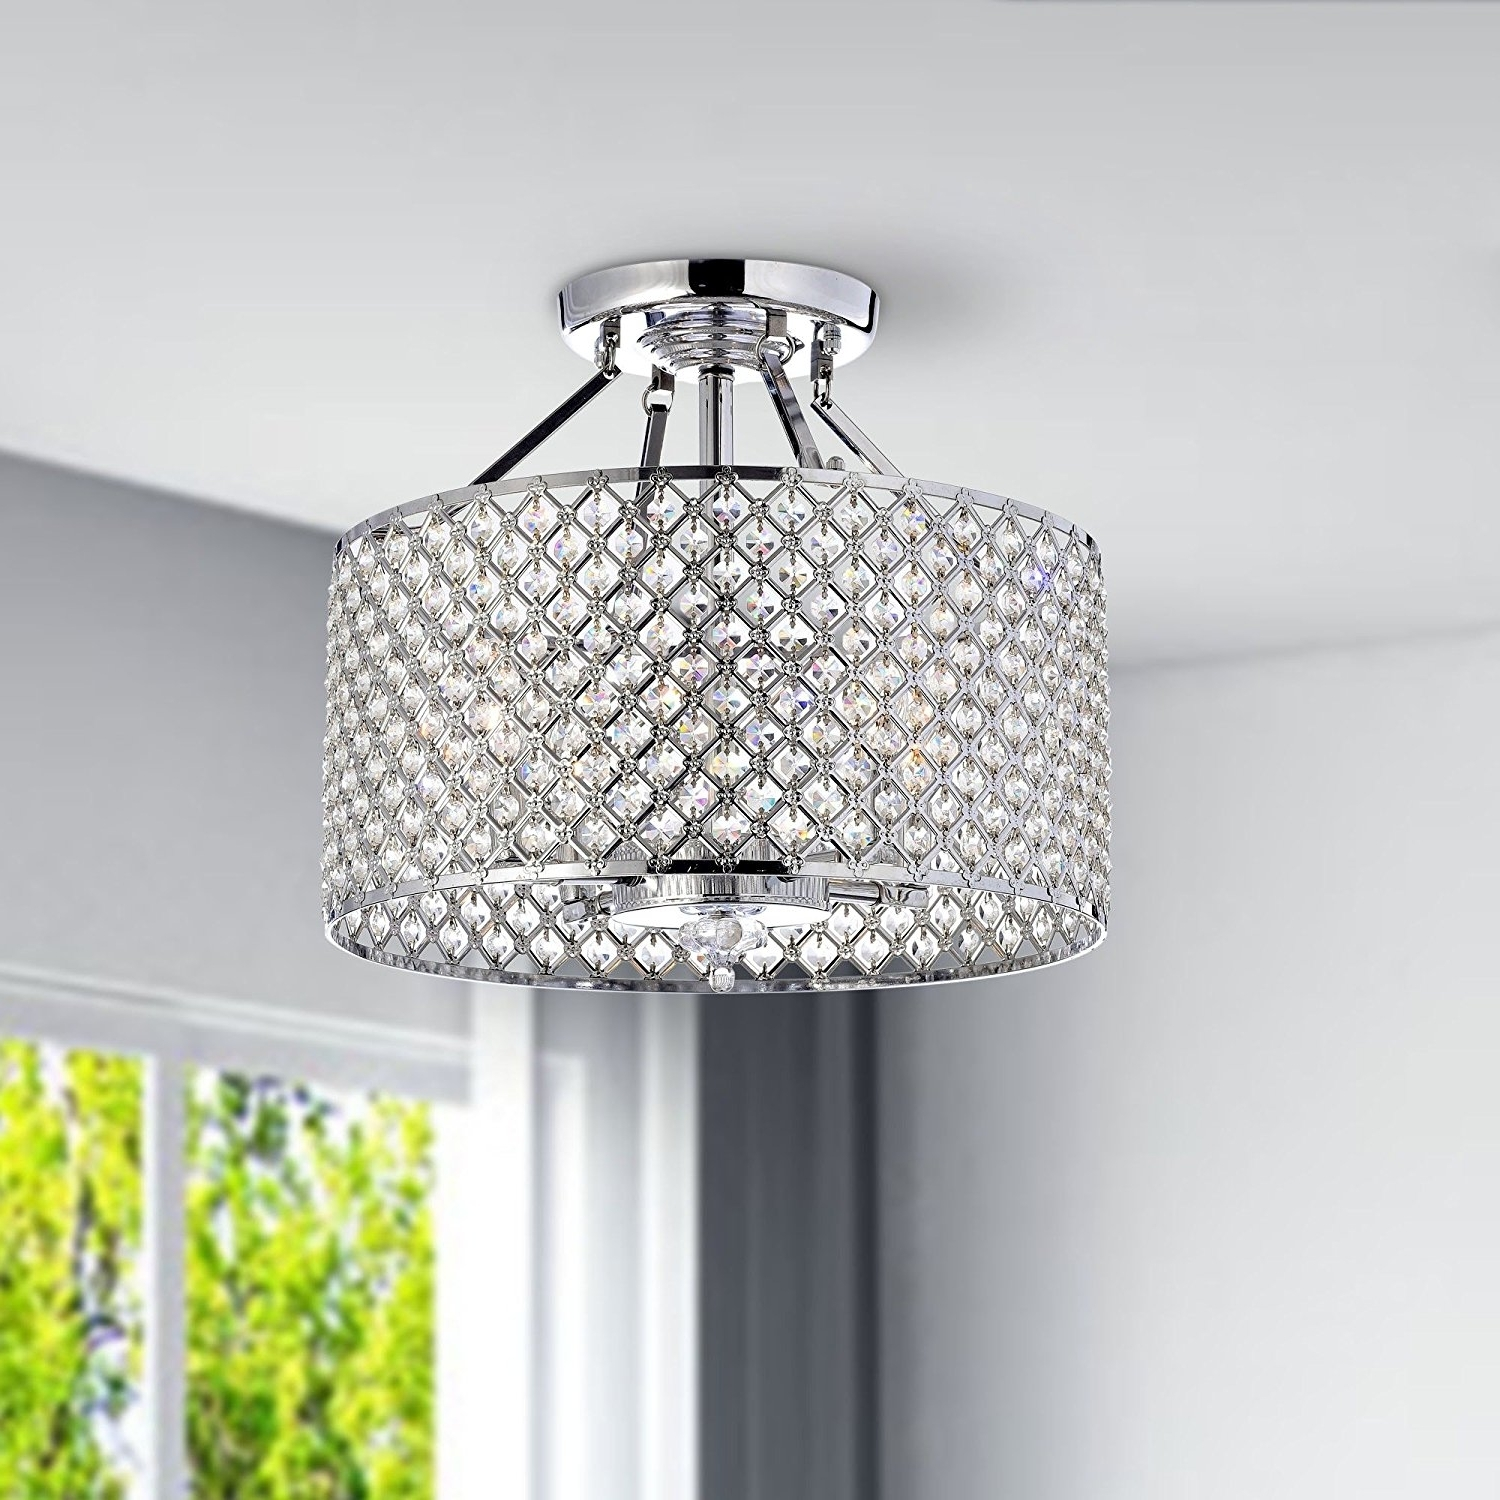 4 Light Chrome Crystal Chandeliers Inside Recent Chrome / Crystal 4 Light Round Ceiling Chandelier – – Amazon (Gallery 2 of 15)